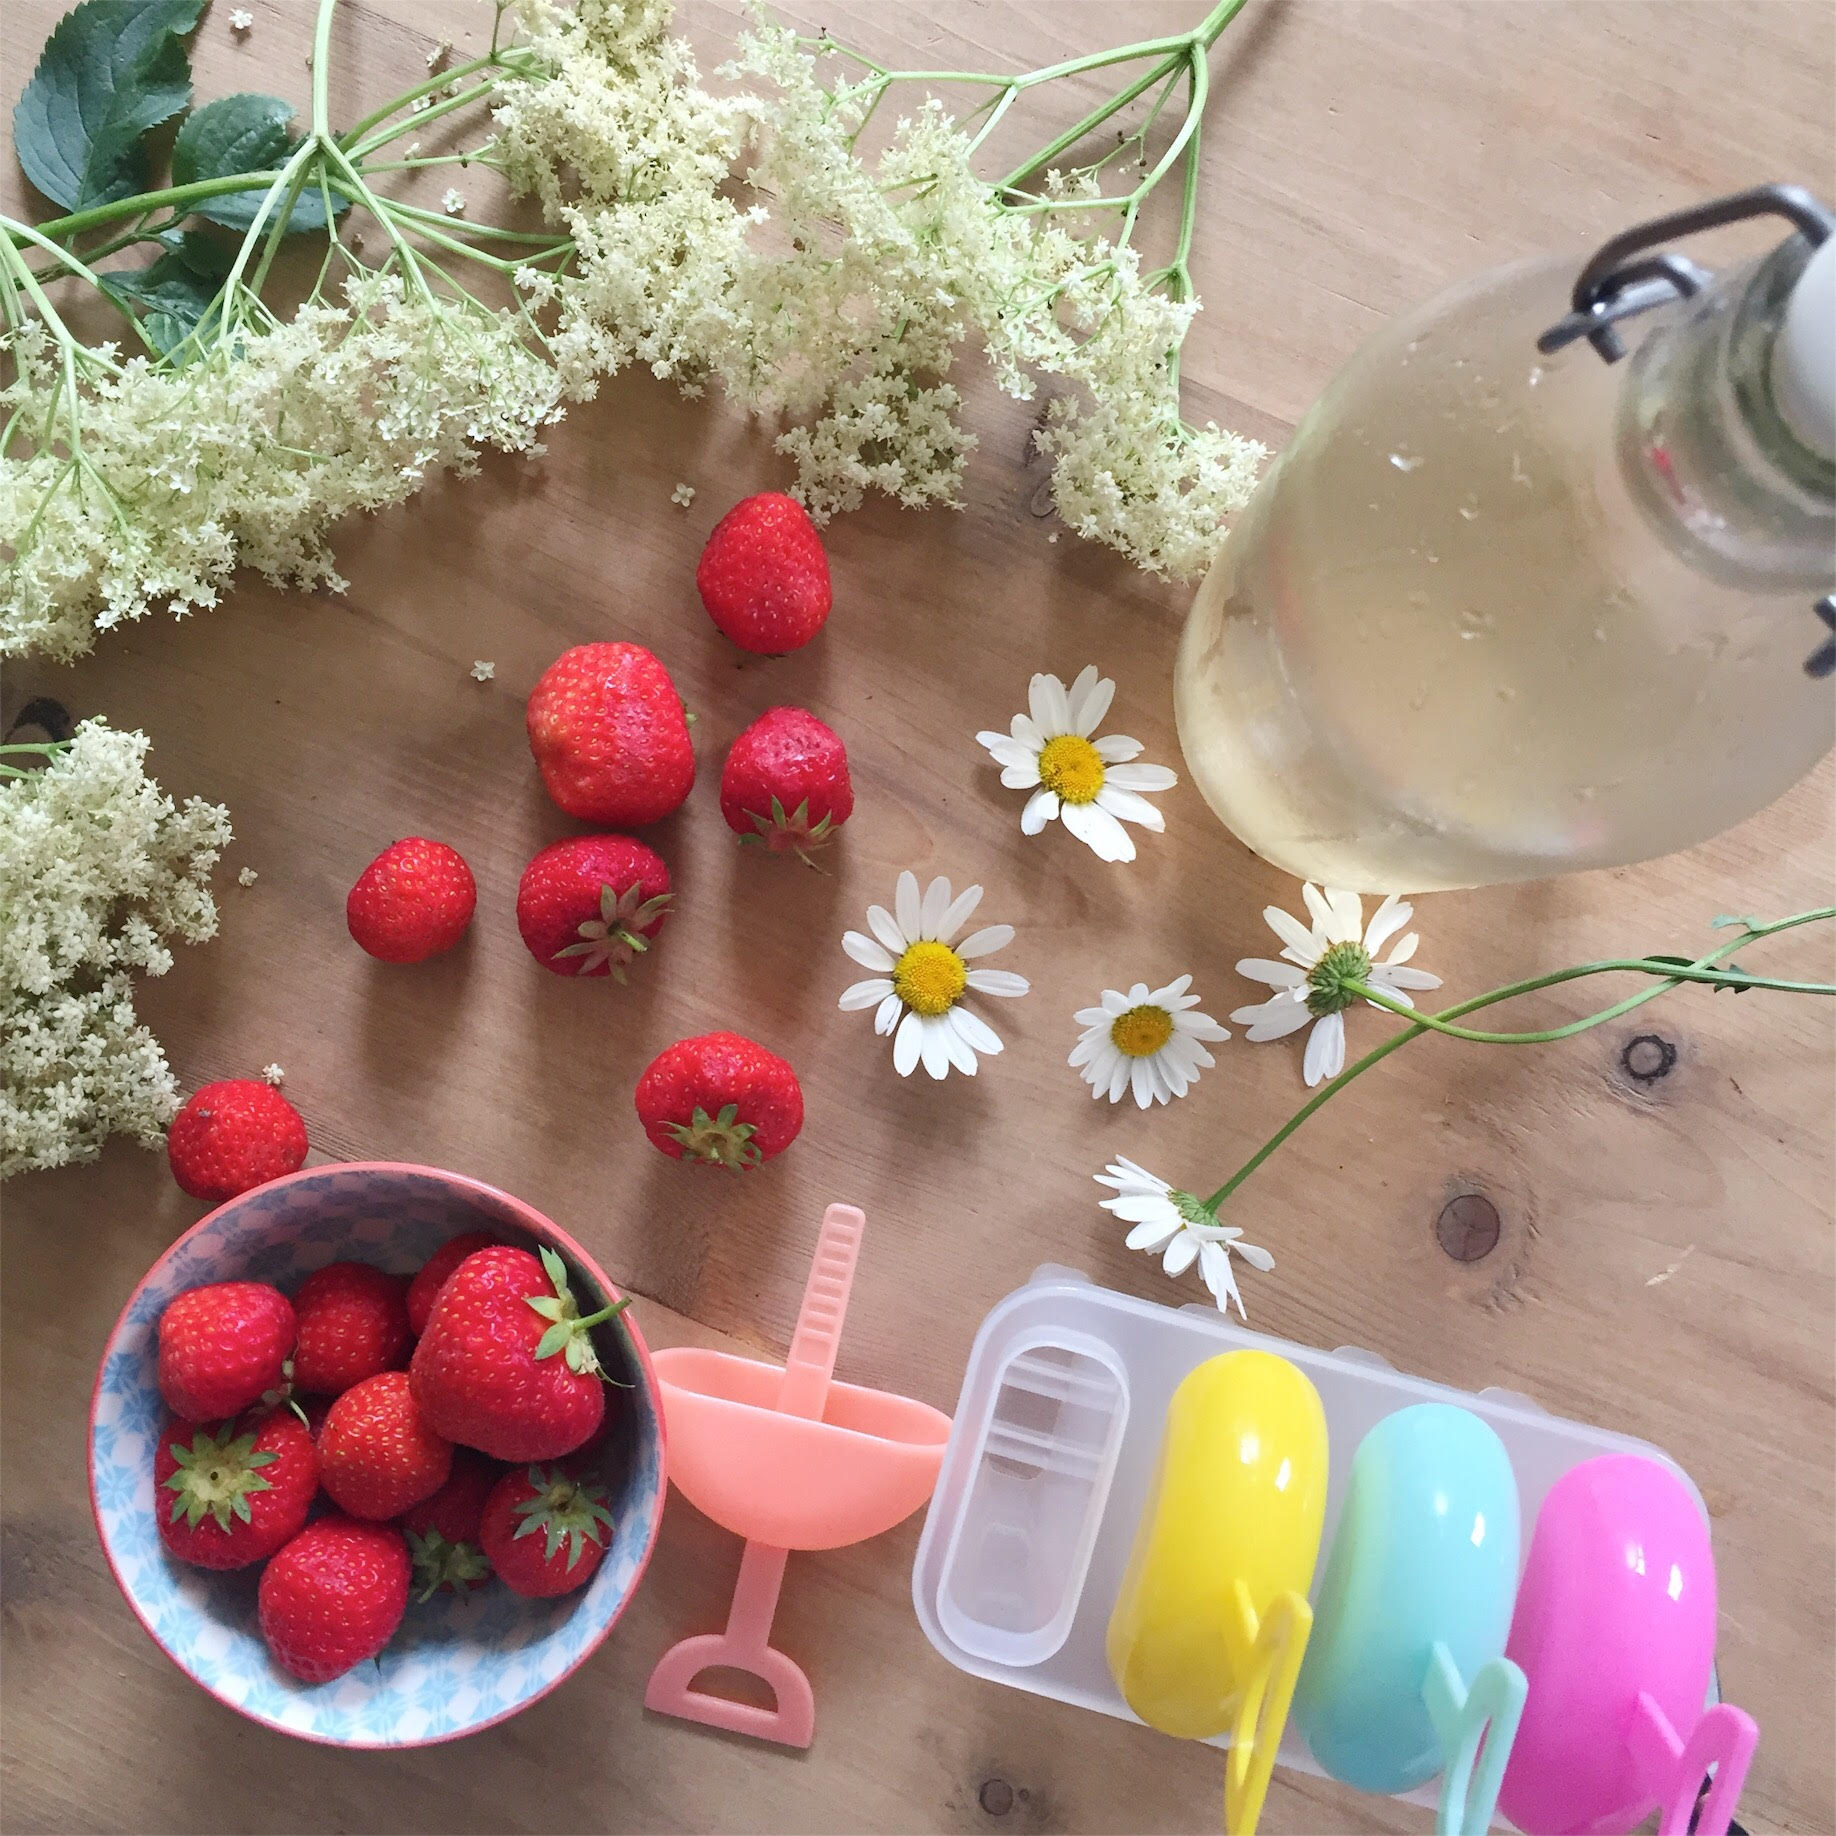 Elderflower and Strawberry Ice Lollies